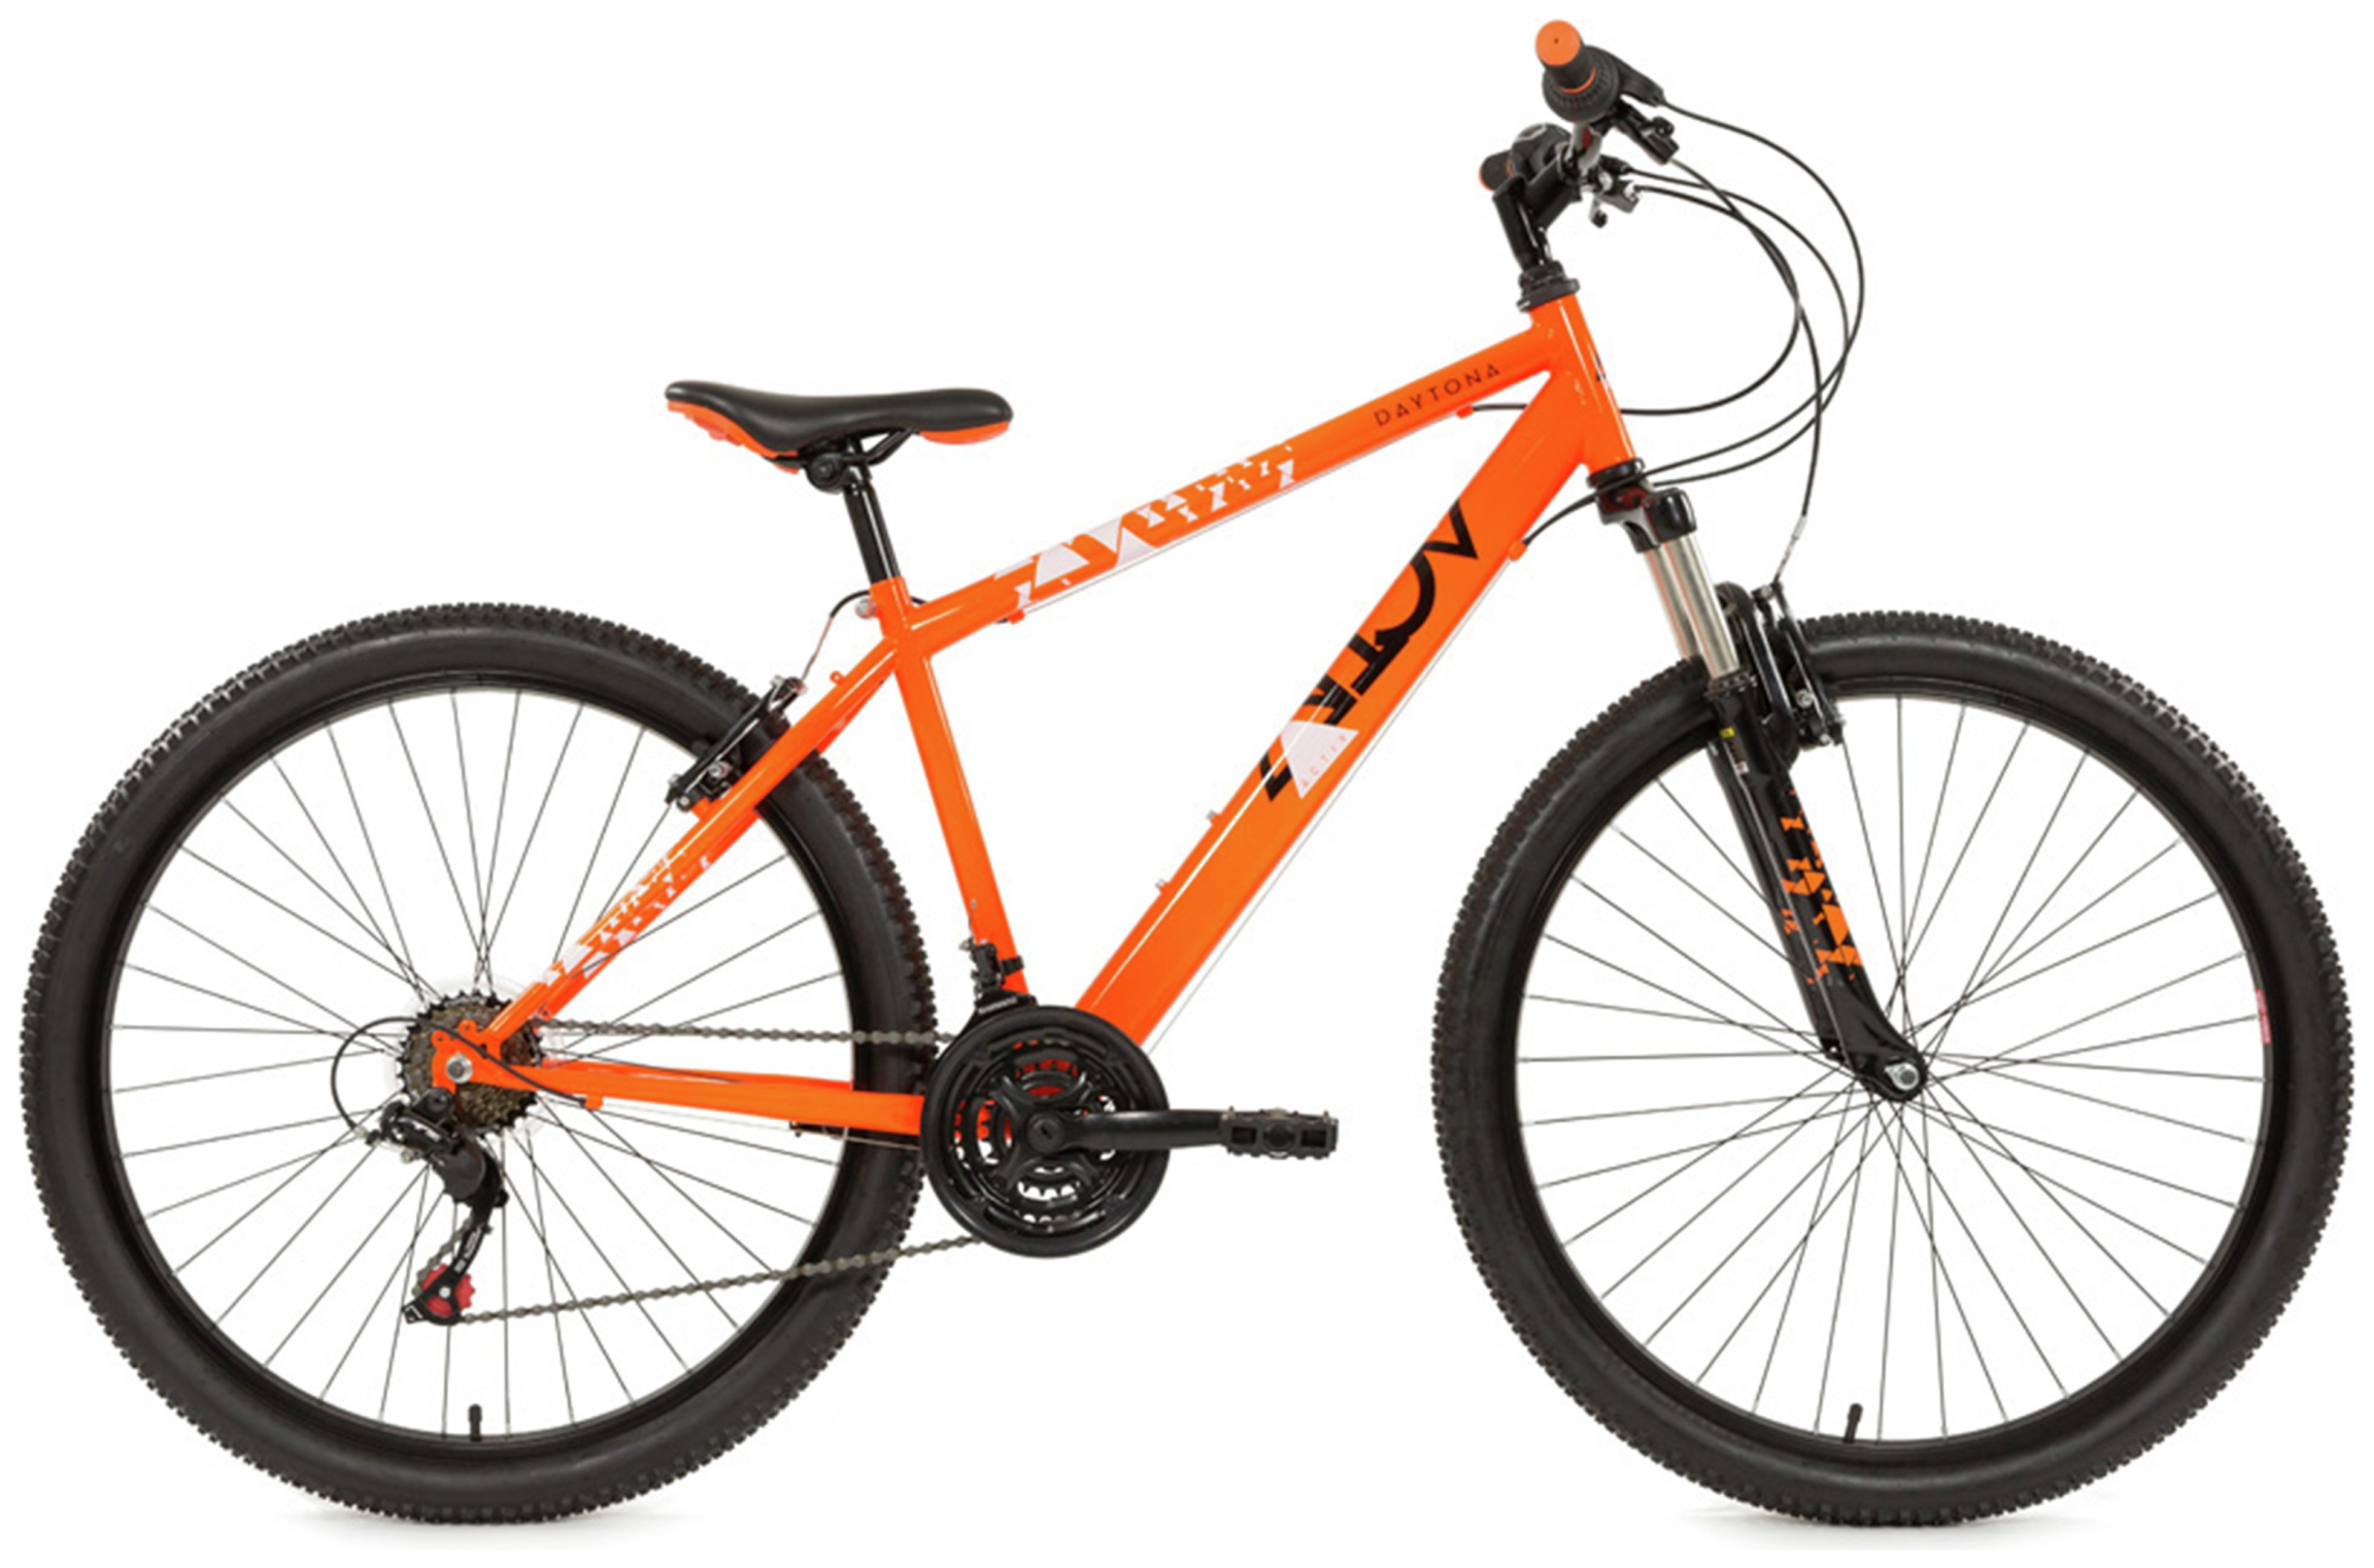 Image of Activ Daytona Mens Front Suspension Mountain Bike - 17 Inch